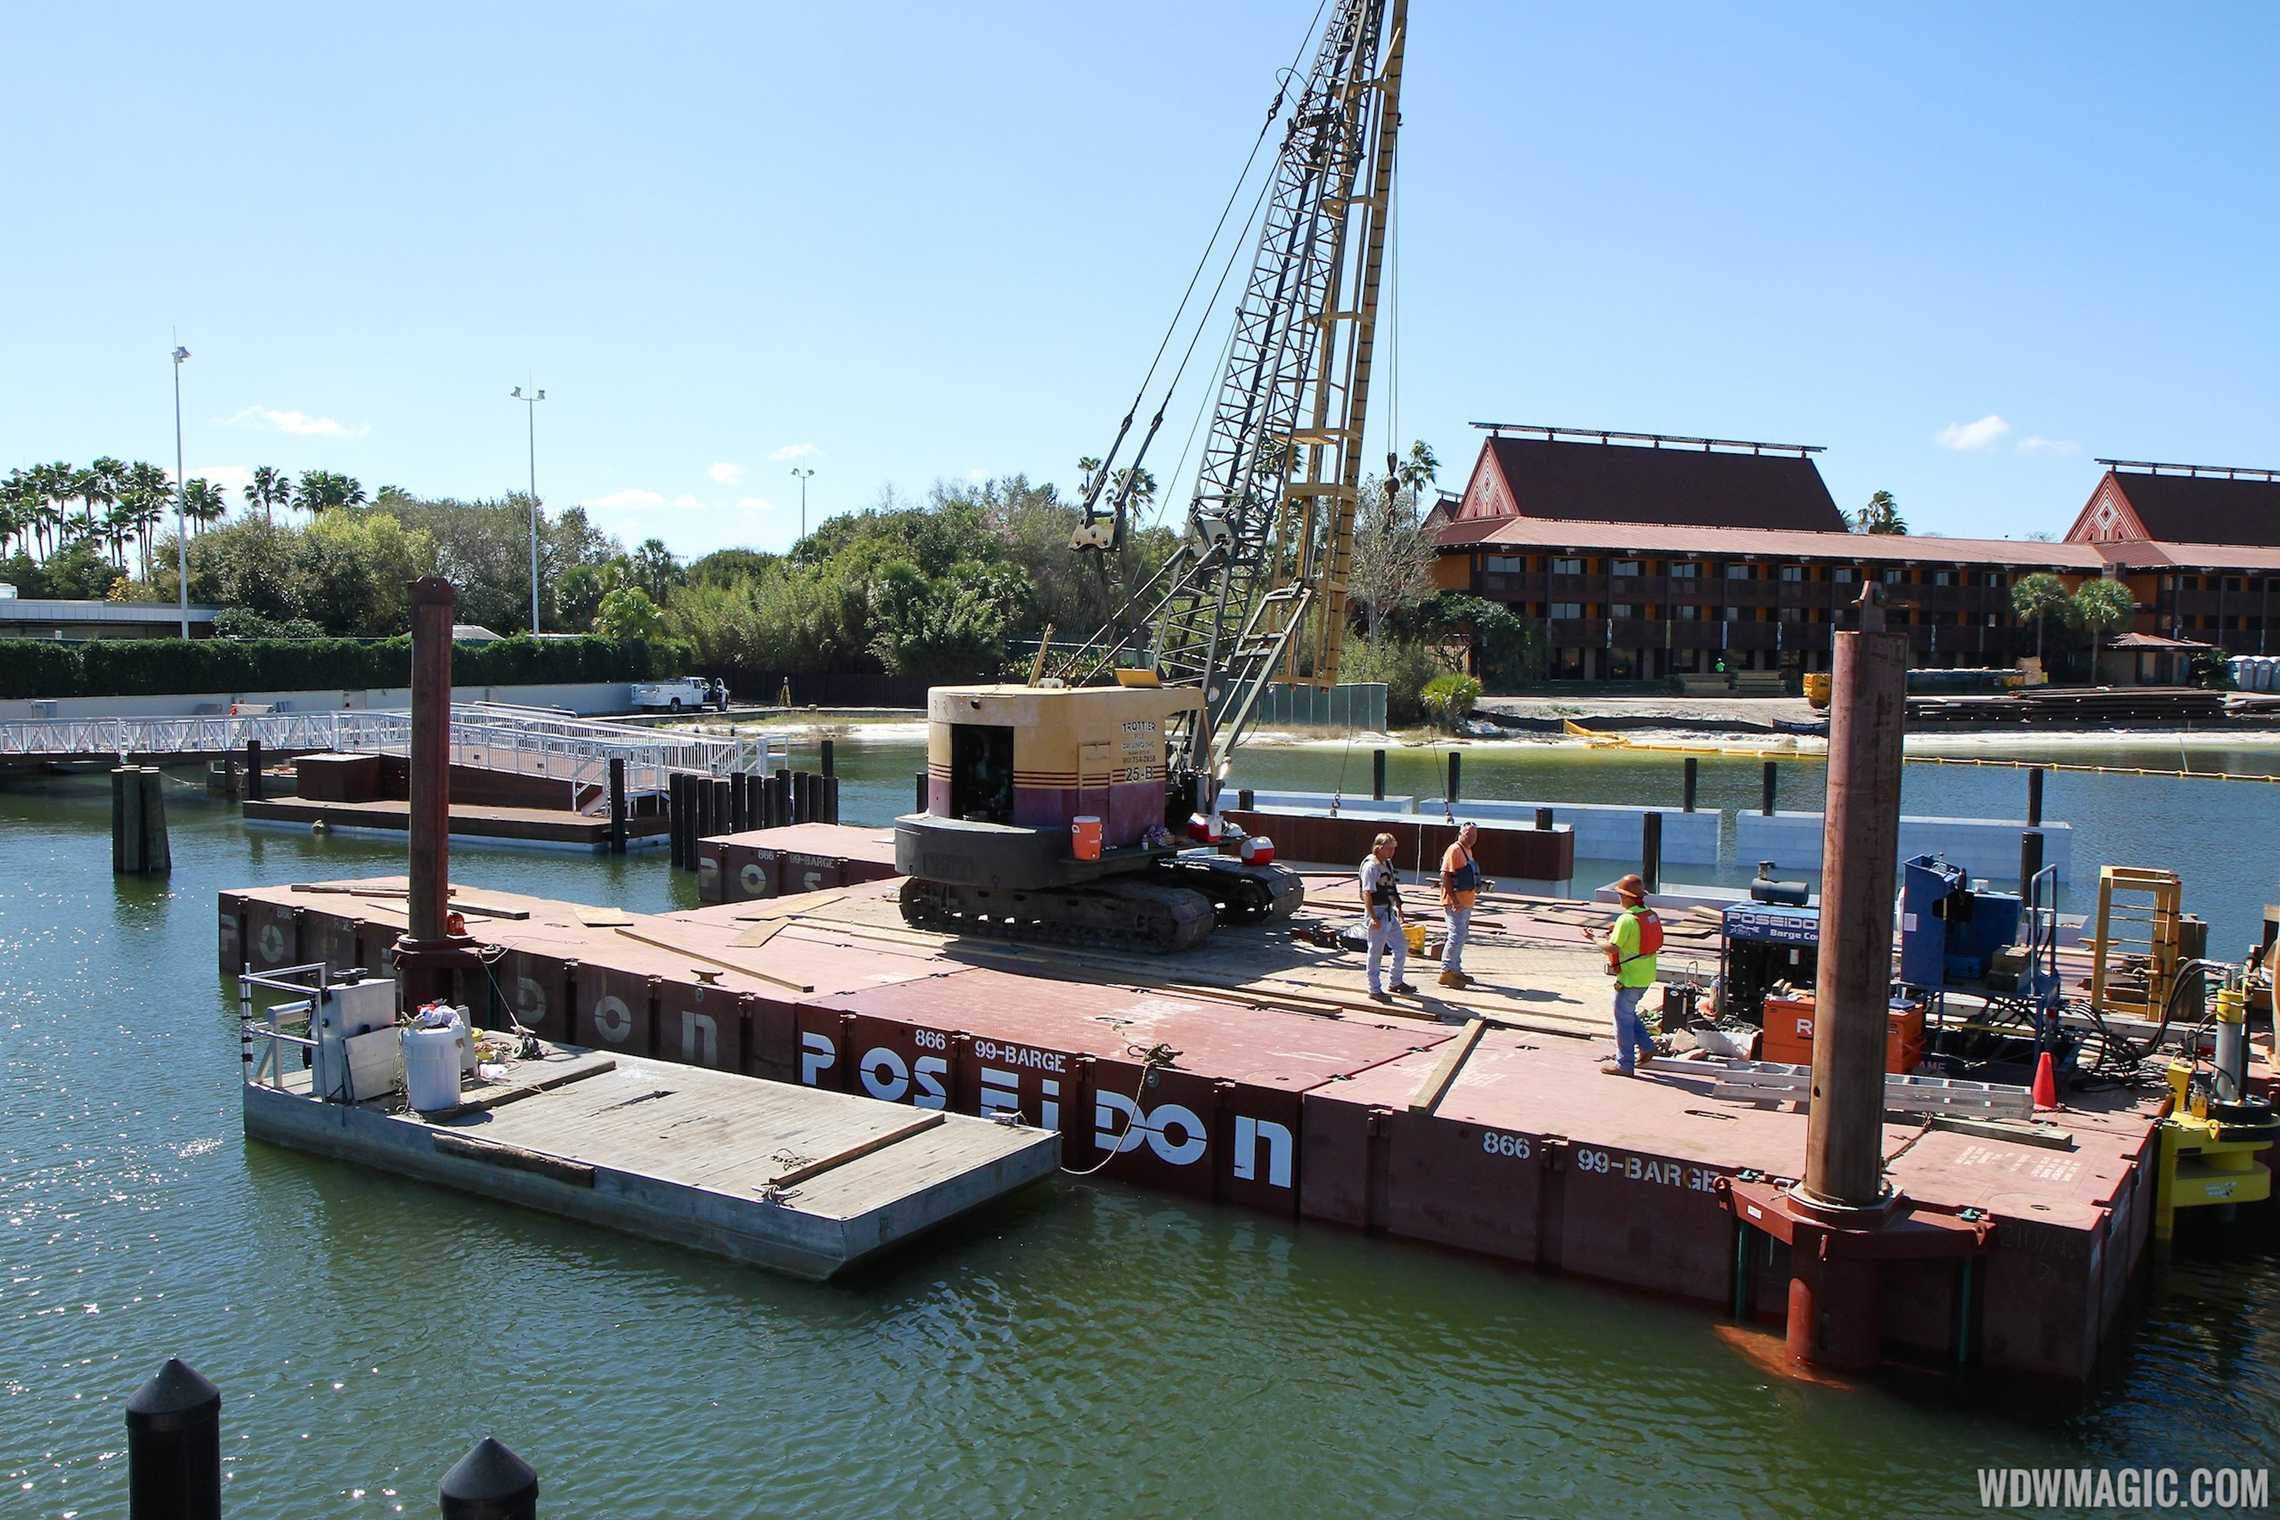 Construction of the second TTC ferry boat dock